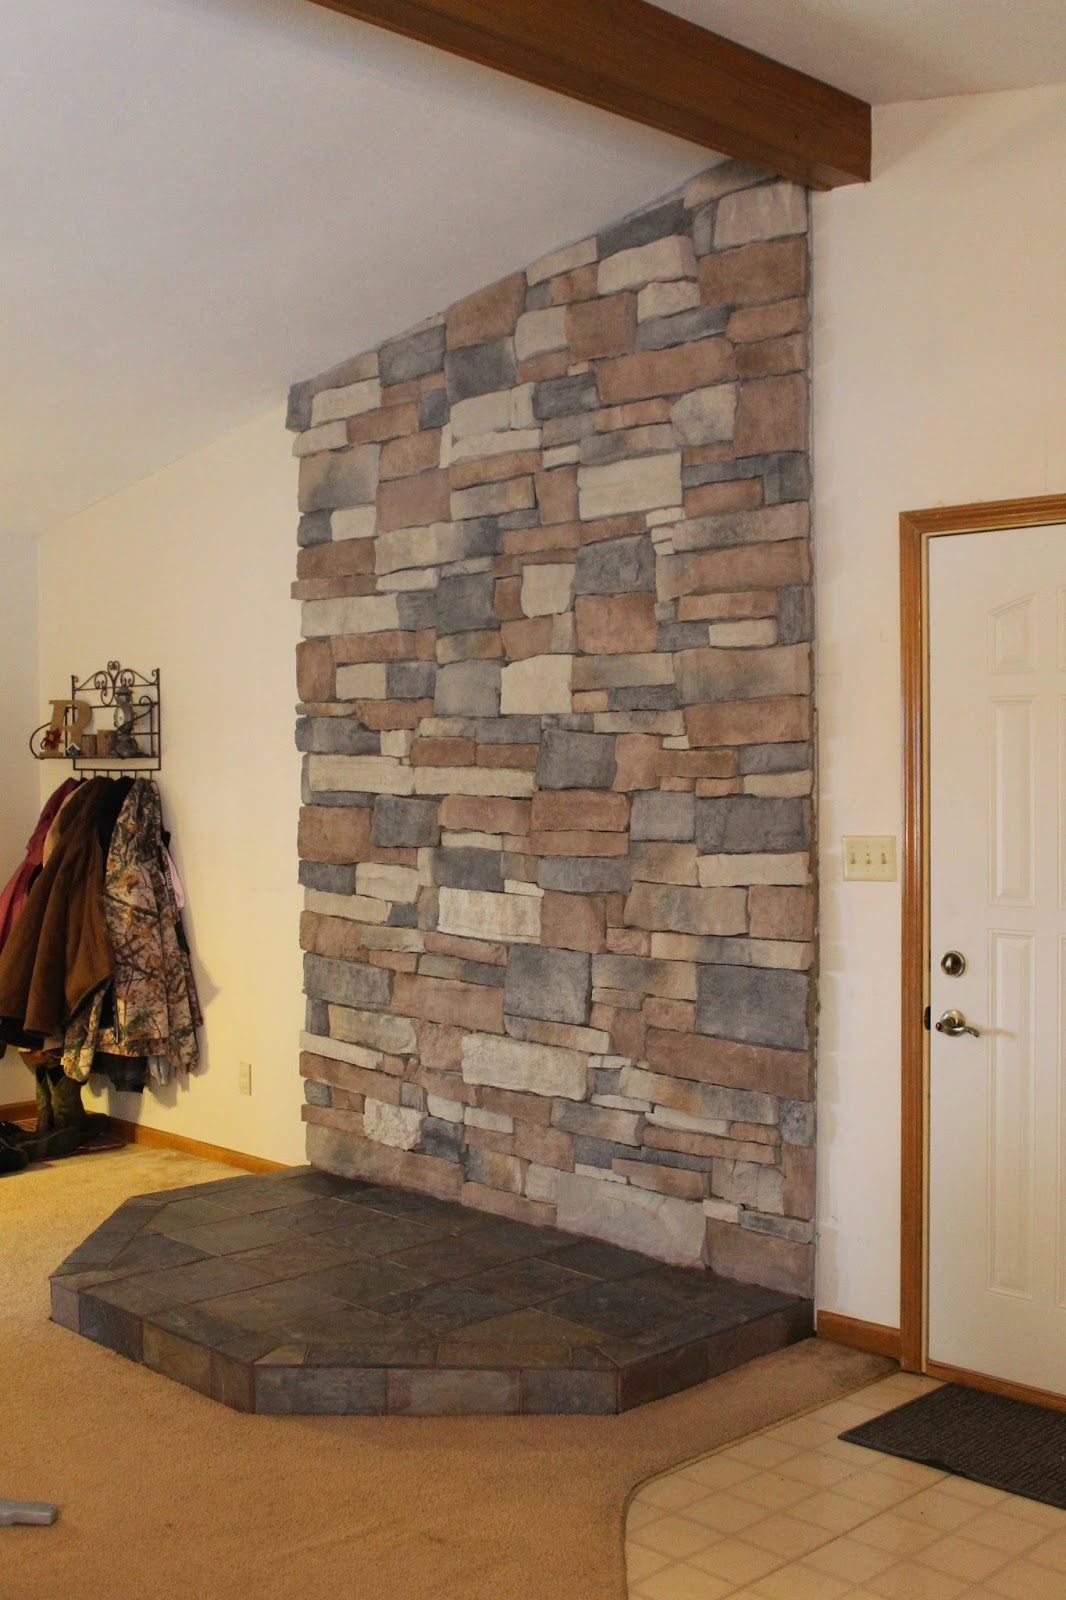 Completed hearth before stove installation. - All The Joy: DIY Hearth For A Wood Burning Stove